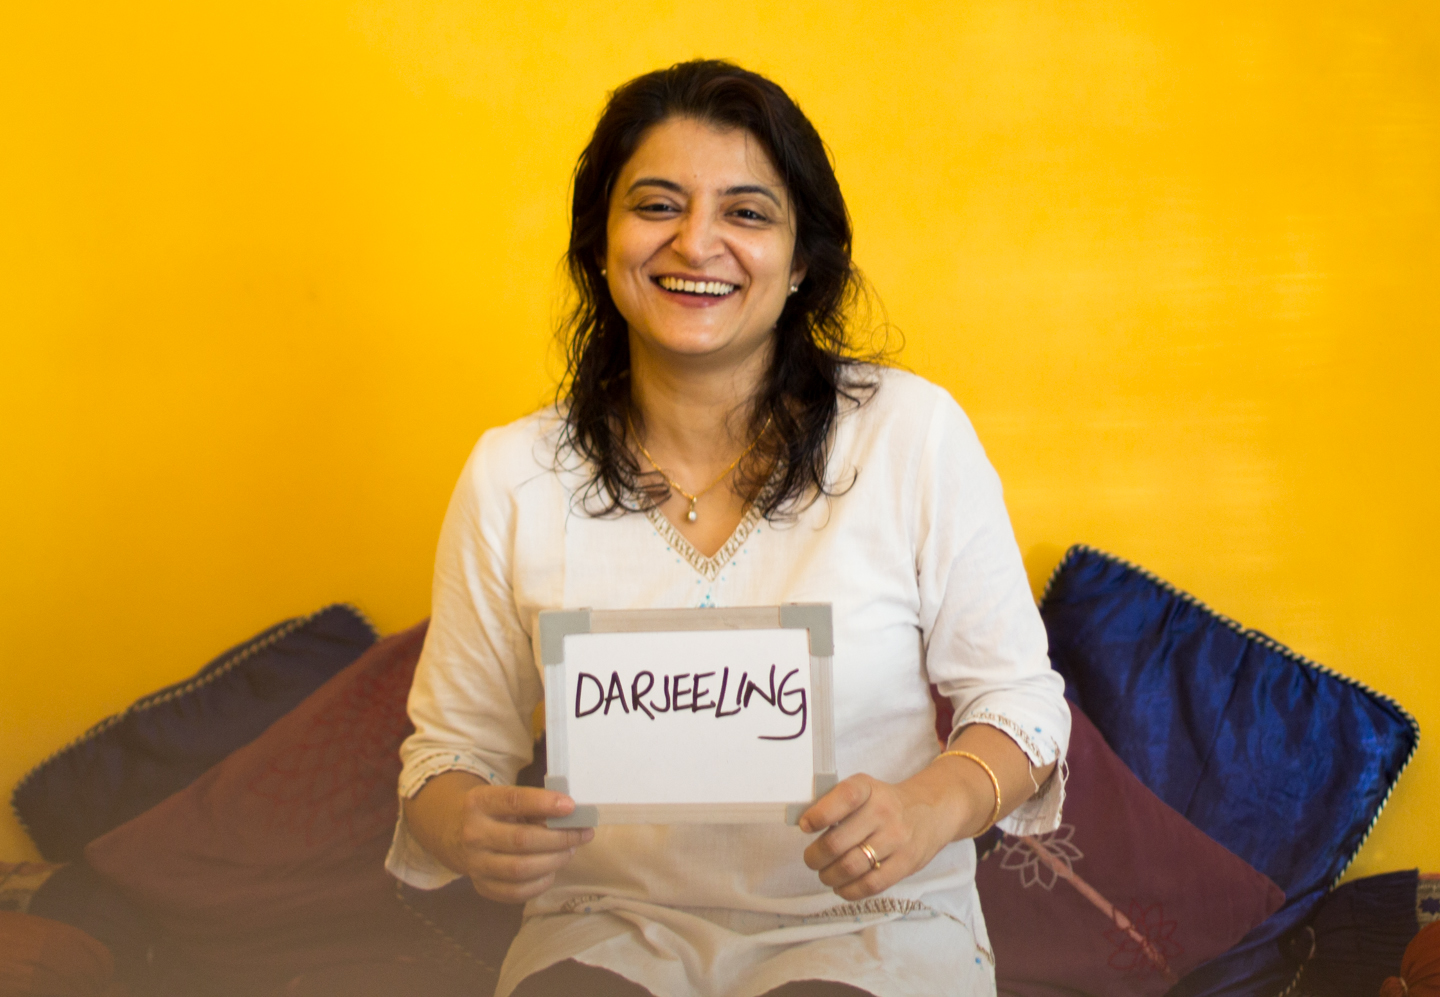 Tinku Ray's career in media has taken her all over the world. Whether in the US, the UK, or her current home in Delhi, she always drinks tea from Darjeeling, which reminds her of her Bengali roots growing up in Kolkata.